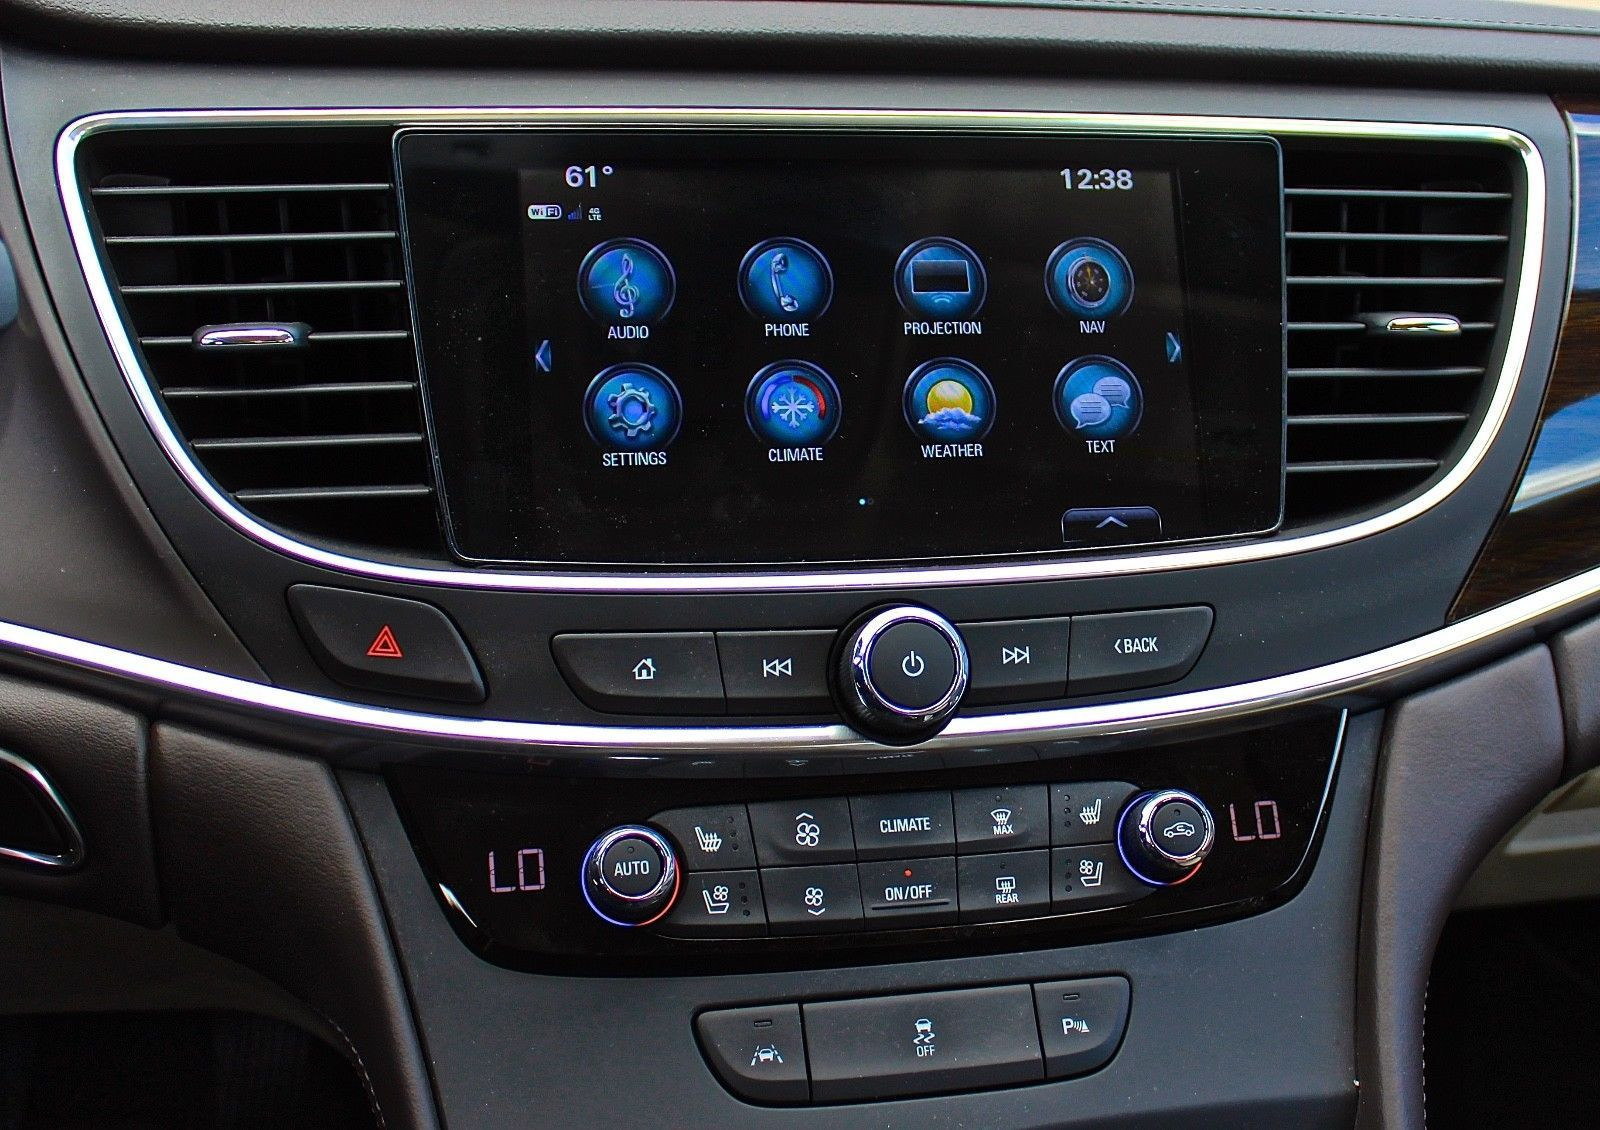 37332_11_2_1024x png 1024 676 buick lacrosse pinterest buick lacrosse lacrosse and buick